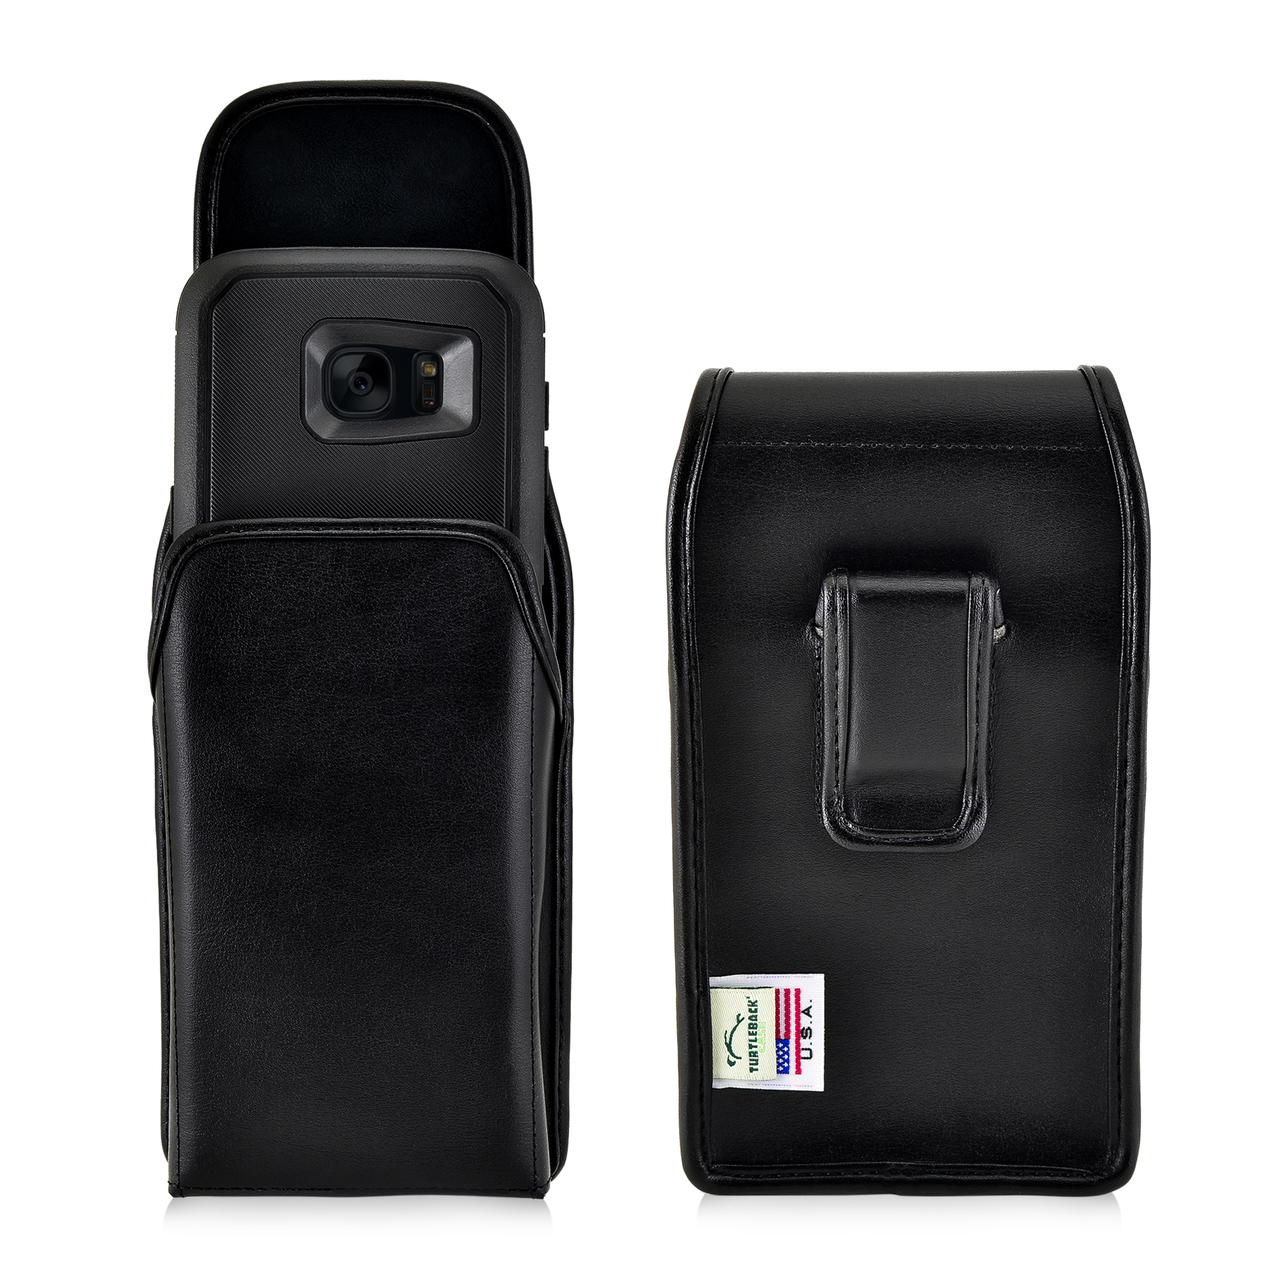 info for 66920 d3c14 S7 Edge Leather Vertical Holster Black Clip Fits Otterbox Defender